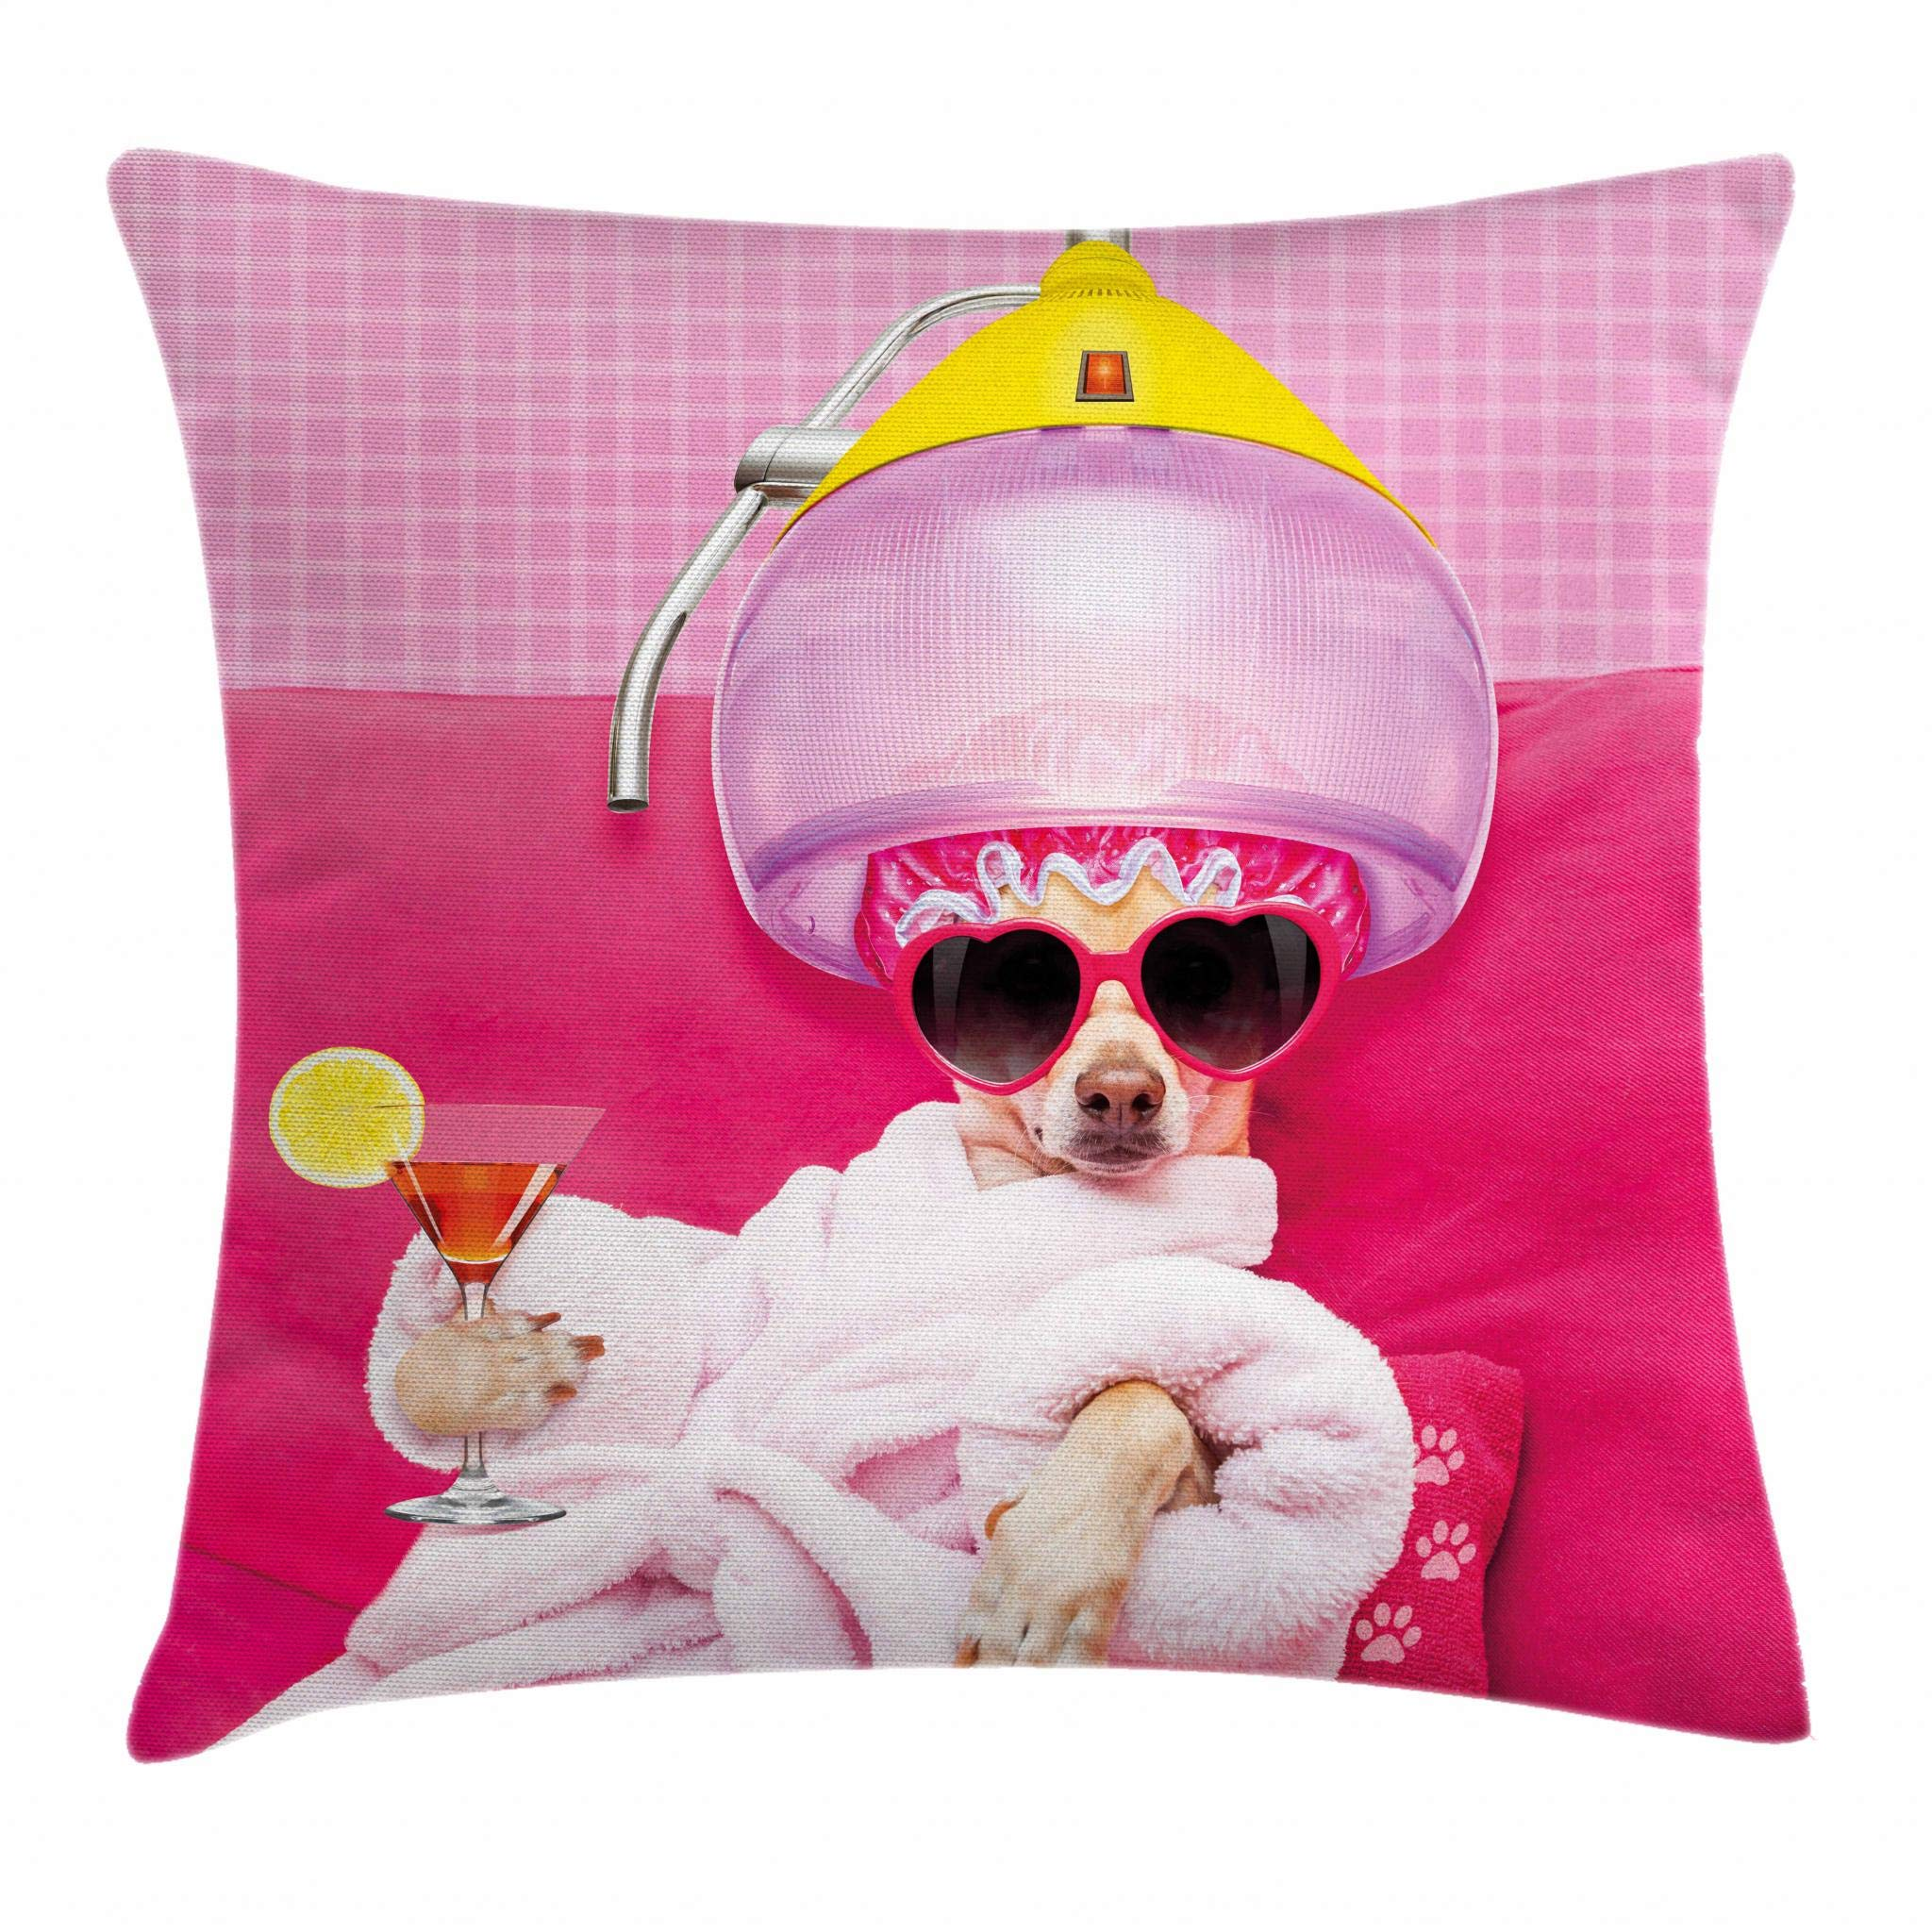 Lunarable Funny Throw Pillow Cushion Cover, Chihuahua Dog Relaxing and Lying in Wellness Spa Fashion Puppy Comic Print, Decorative Accent Pillow Case, 26 W X 16 L Inches, Magenta Baby Pink